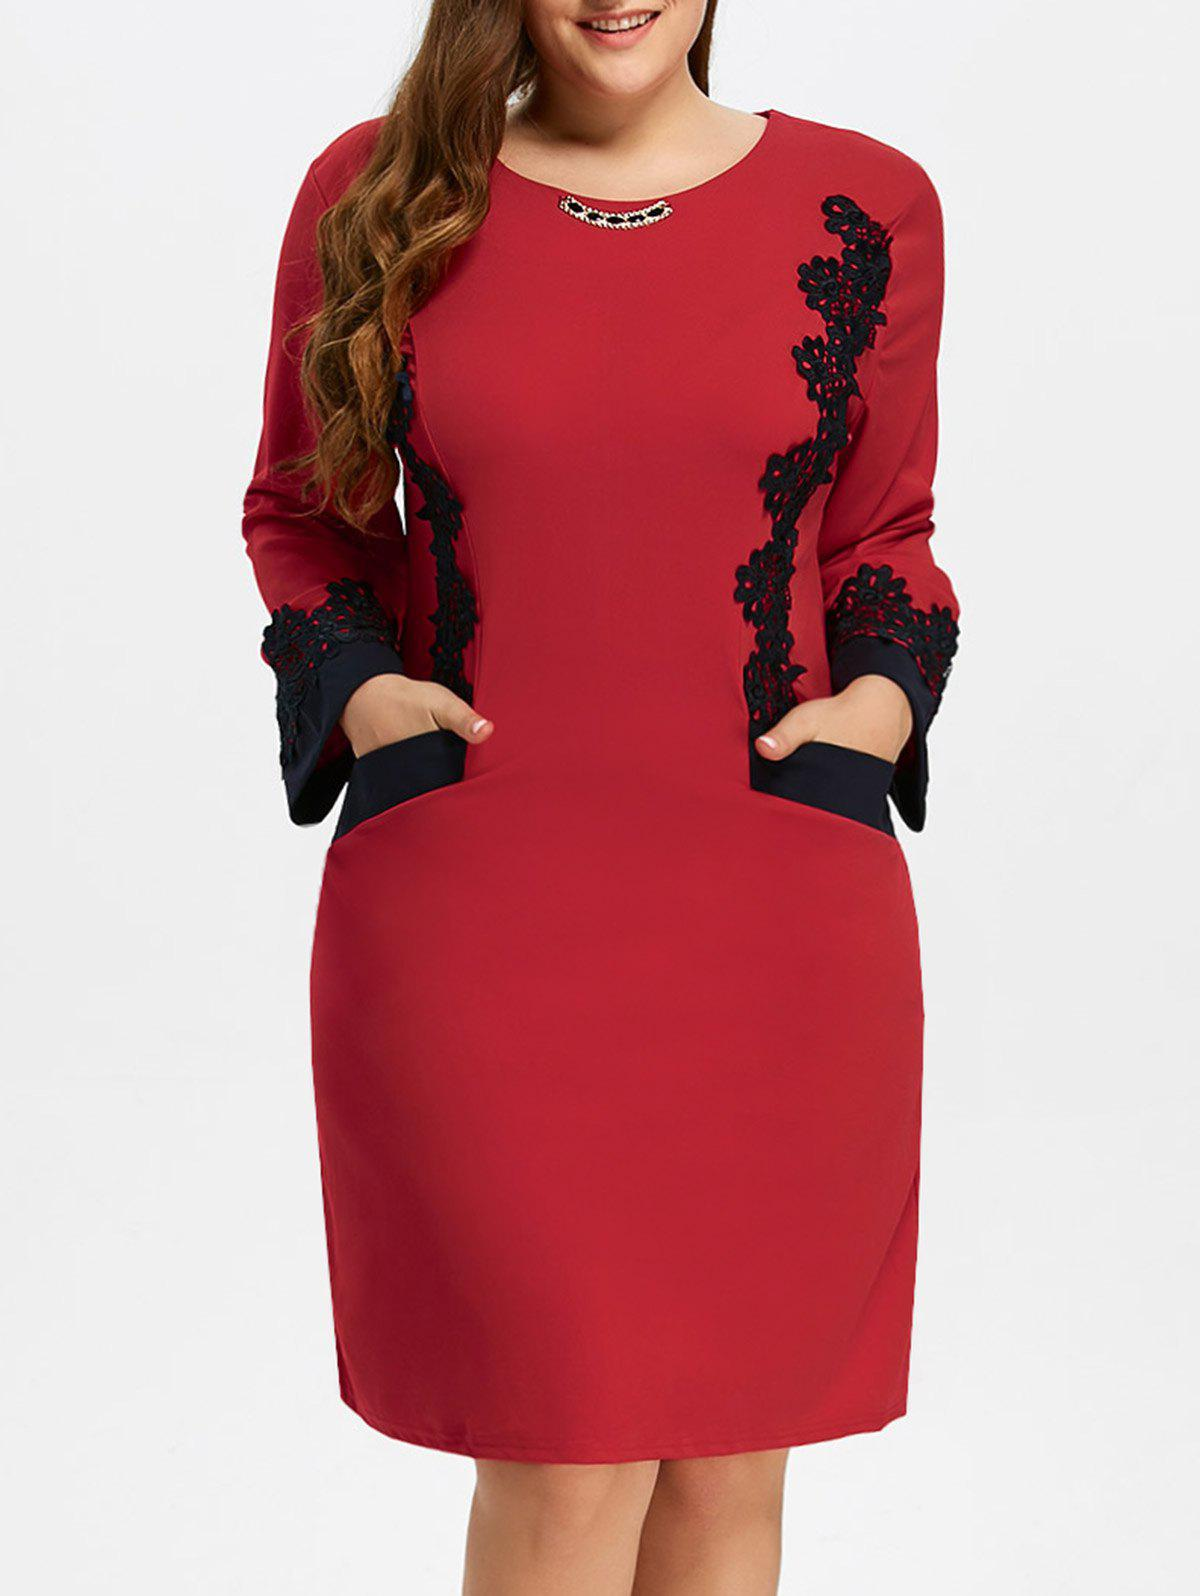 Plus Size Midi Lace Panel DressWOMEN<br><br>Size: 3XL; Color: RED; Style: Brief; Material: Polyester; Silhouette: Straight; Dresses Length: Mid-Calf; Neckline: Jewel Neck; Sleeve Length: Long Sleeves; Pattern Type: Patchwork; With Belt: No; Season: Fall,Spring,Winter; Weight: 0.370kg; Package Contents: 1 x Dress;